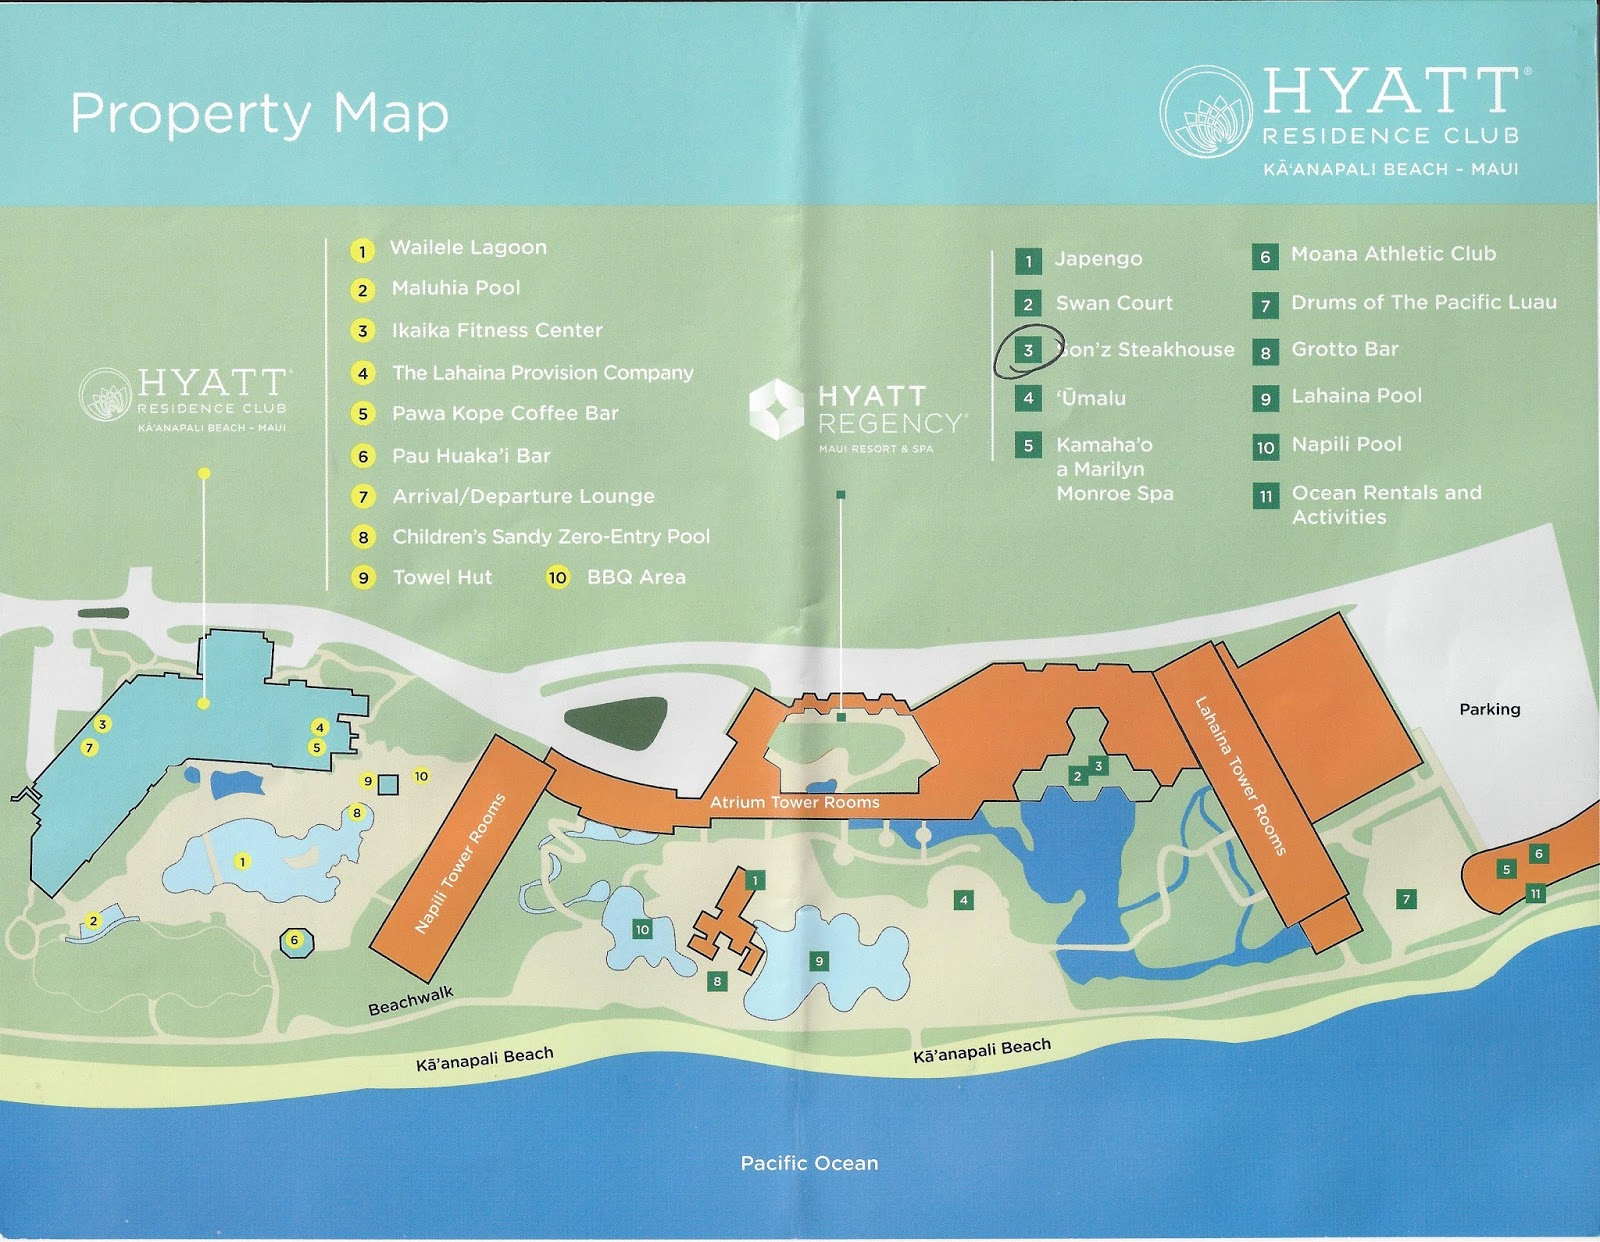 The Only Parking Option At Hyatt Residence Club Is Through Valet Which Provided Free Of Charge For Owners